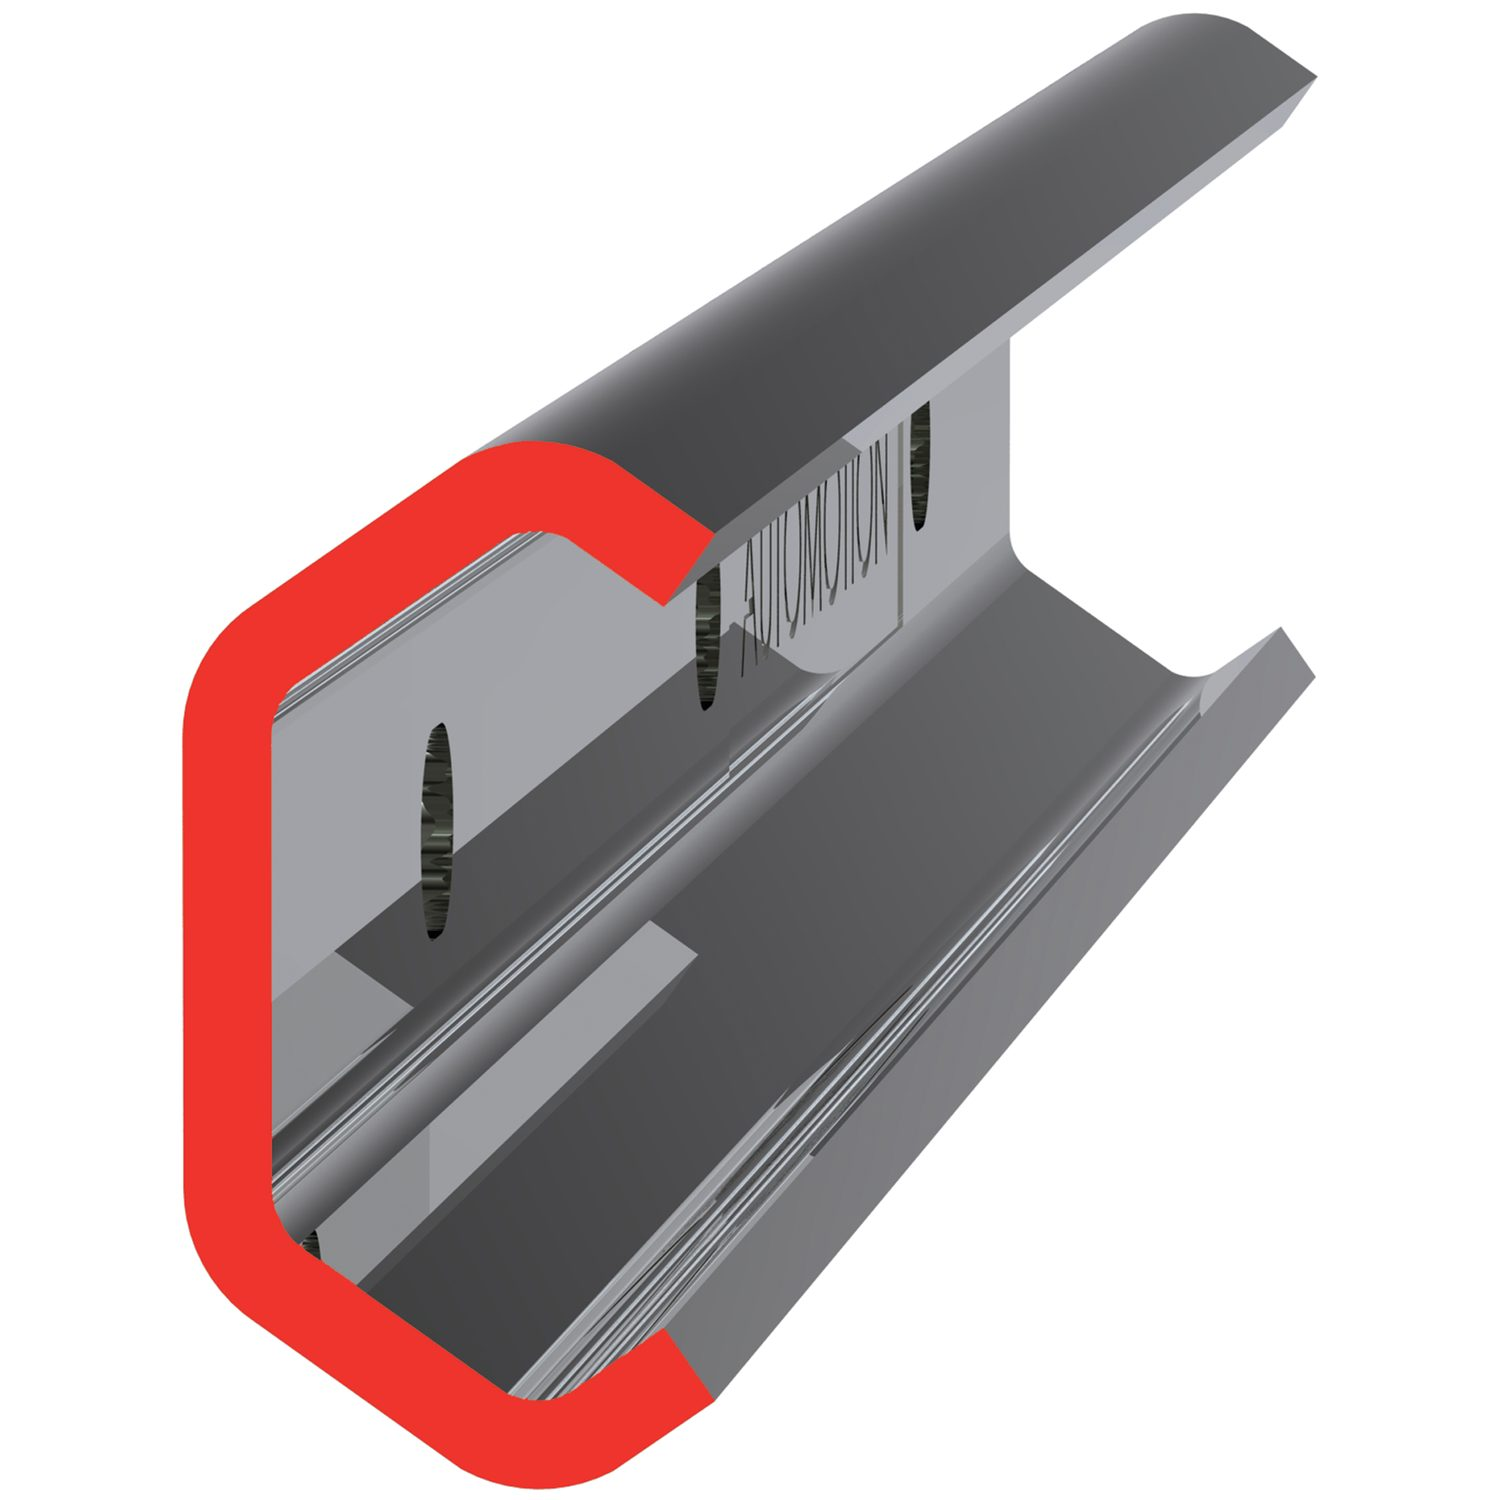 Stainless X Rail For less accurate and lower loads applications we have a range of pressed steel section rails in three sizes. The rails are zince plated and inexpensive. Stock length up to 3 metres.